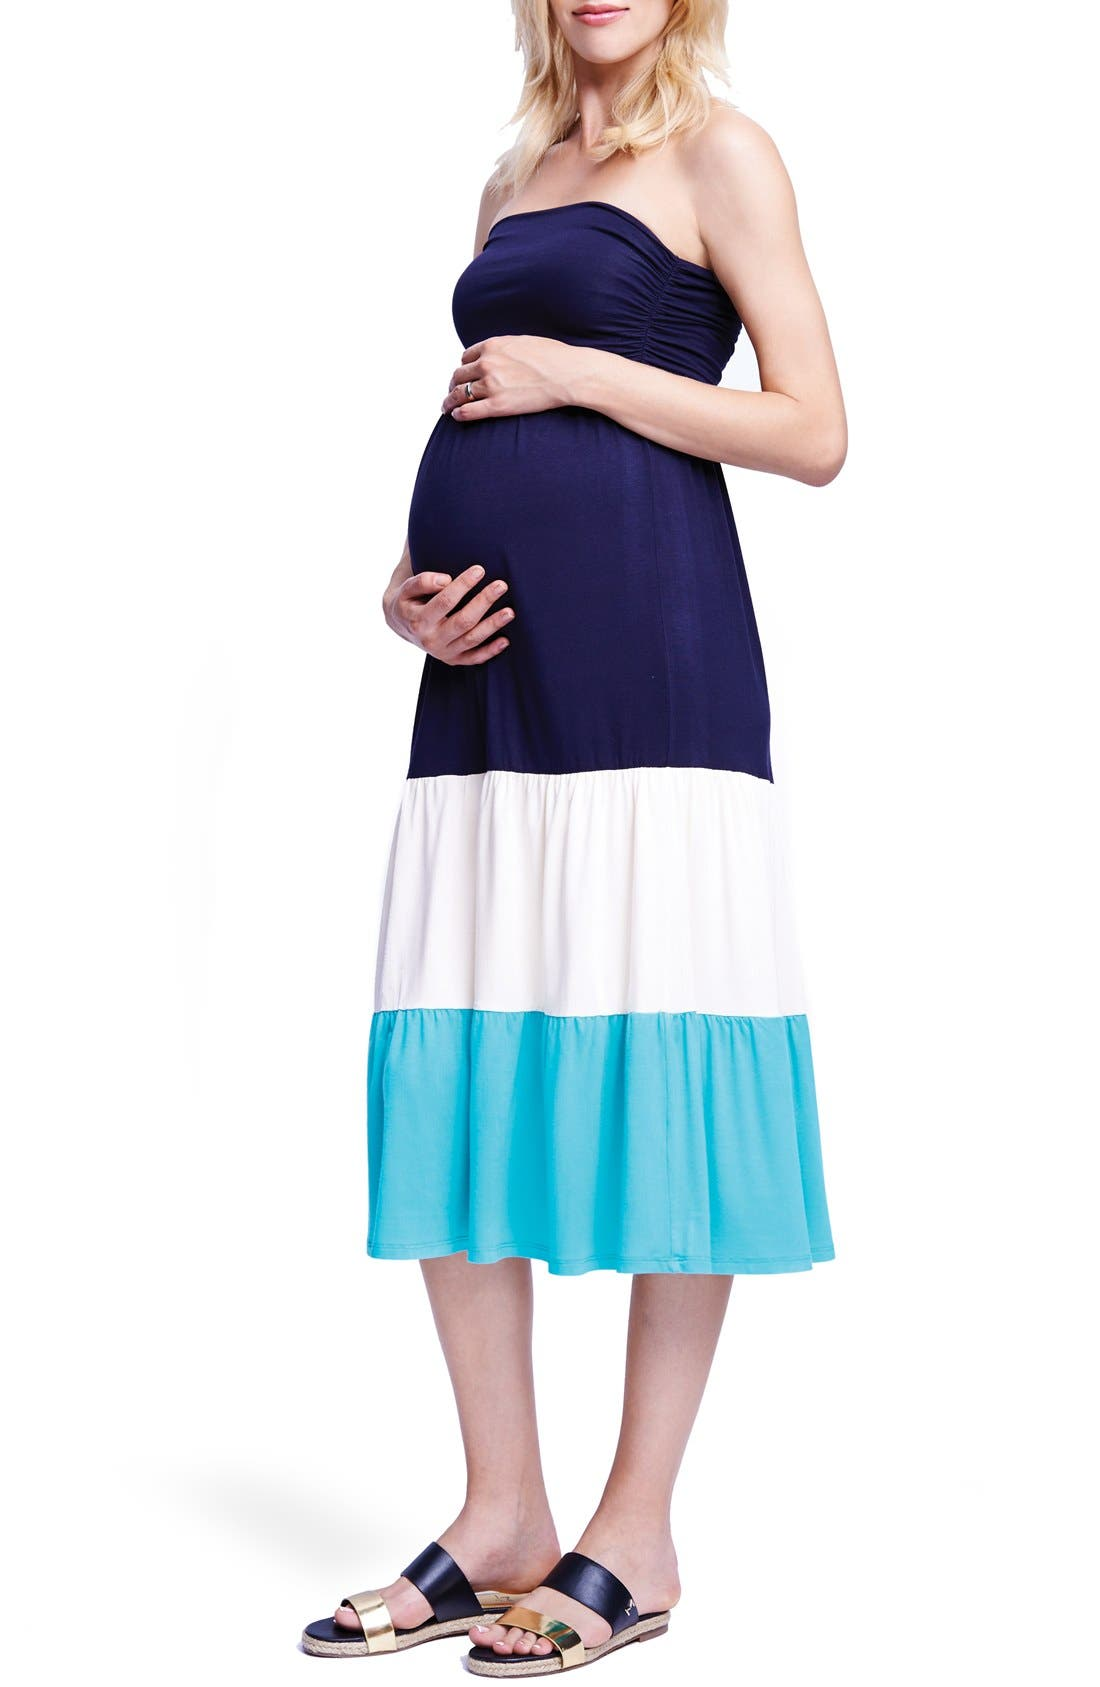 Convertible Strapless Maternity Dress,                             Main thumbnail 1, color,                             NAVY/ OFF WHITE/ MINT